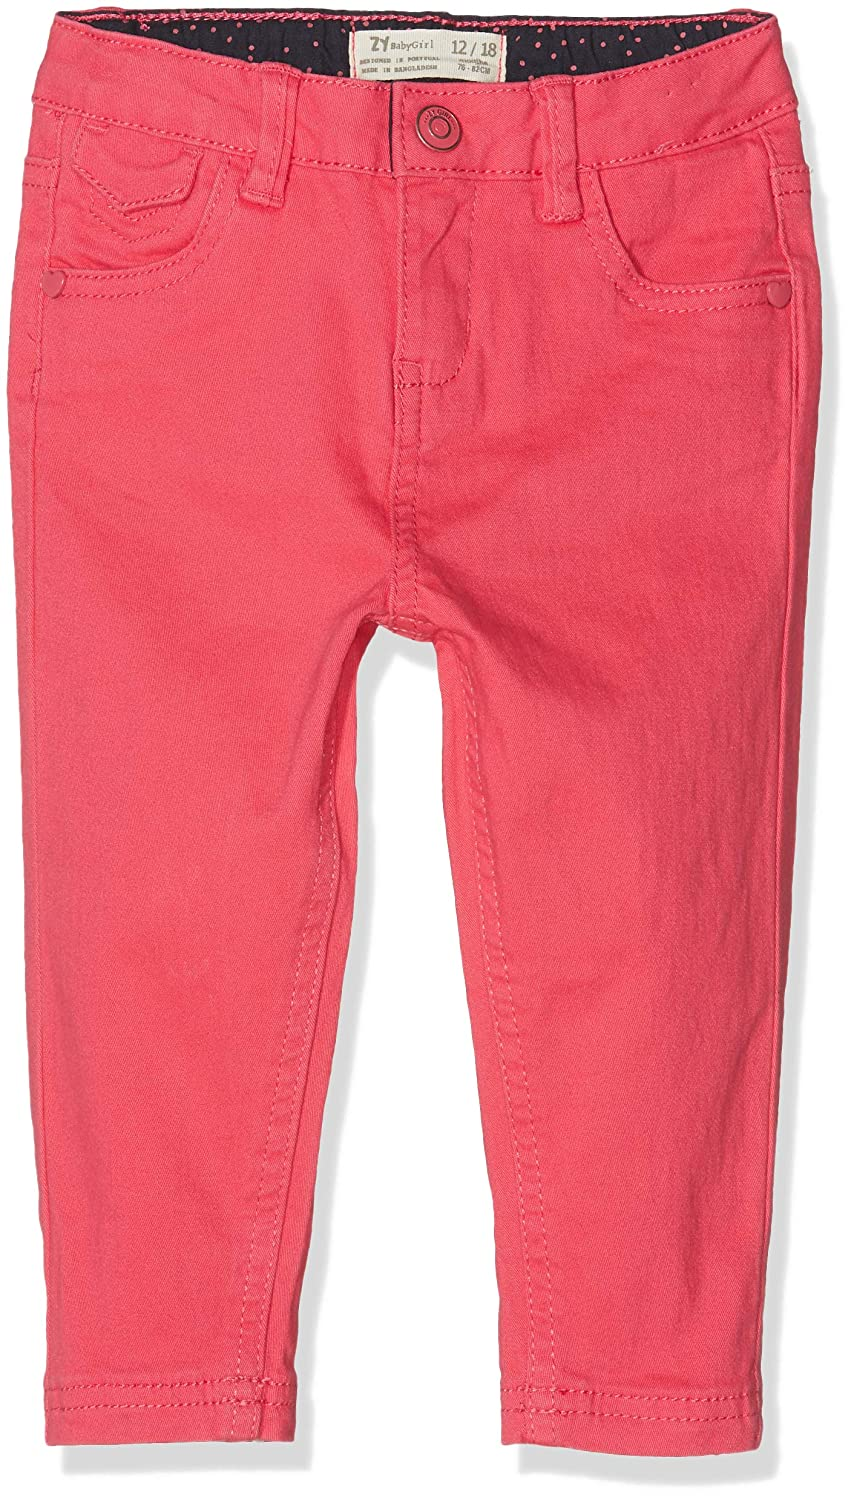 Zippy Pants, Pantalon Bébé Fille ZTG22_431_1